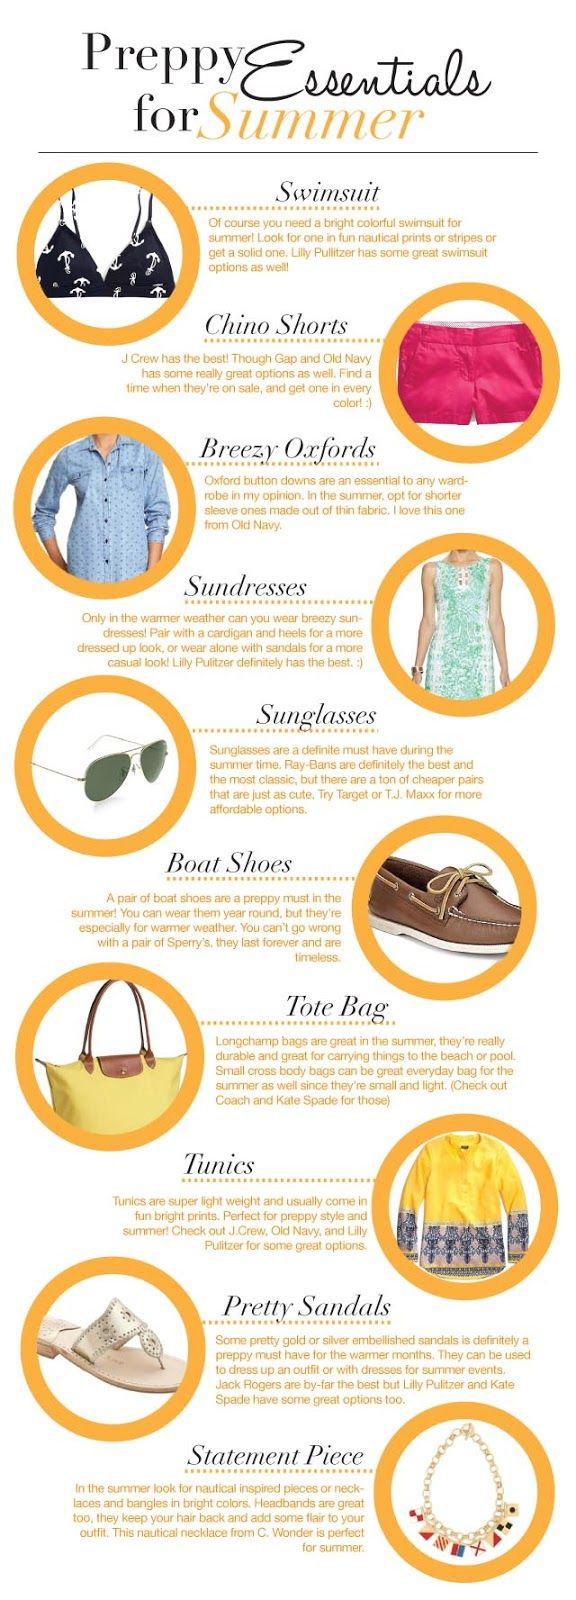 Preppy Essentials for Summer #ShopGenius #ShopGeniusApp .com